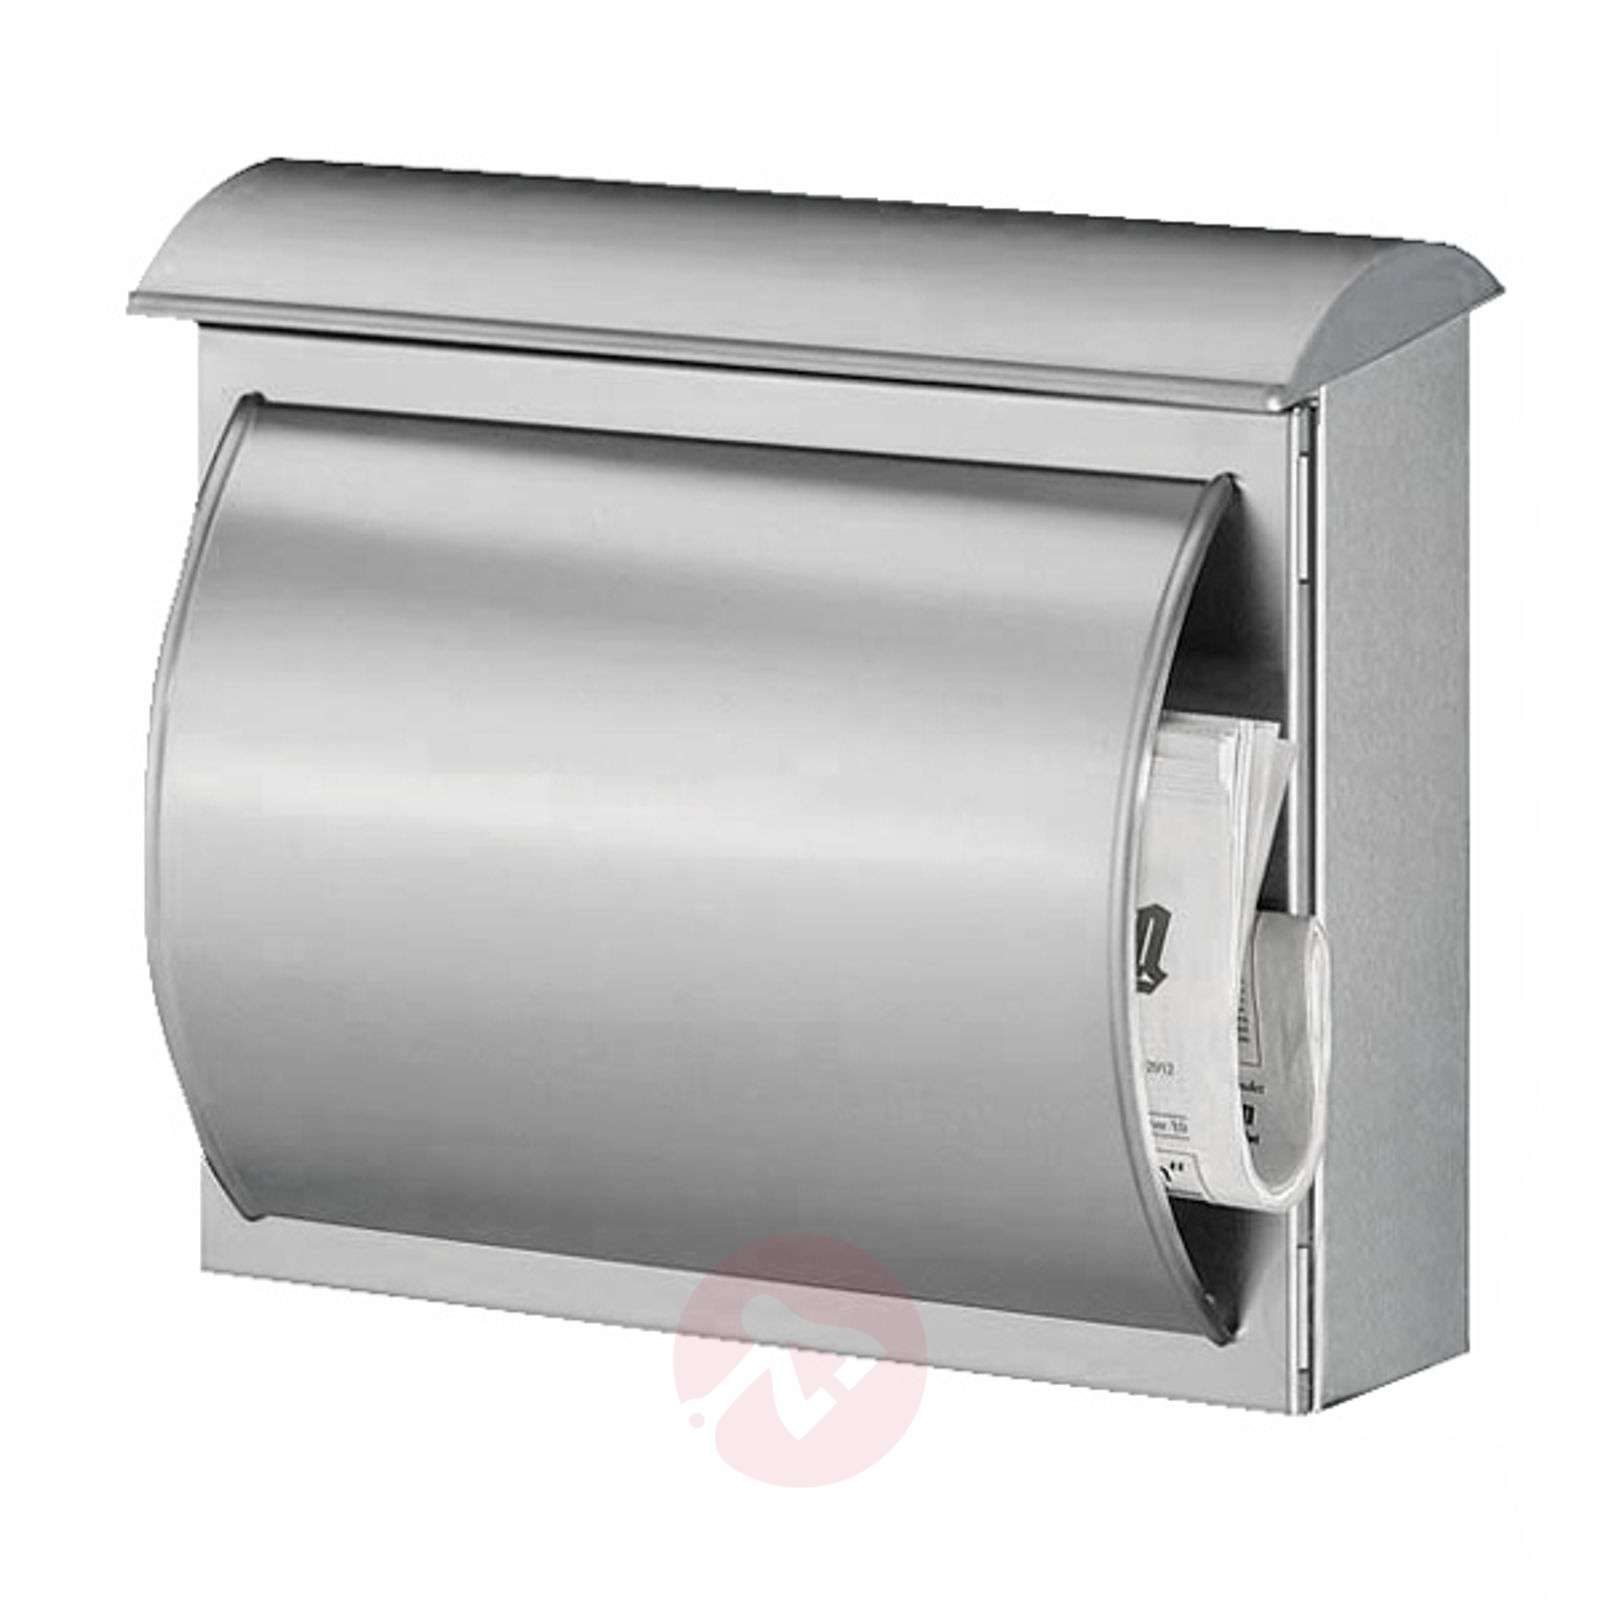 Quelo letterbox, opens to the right-4502025-01